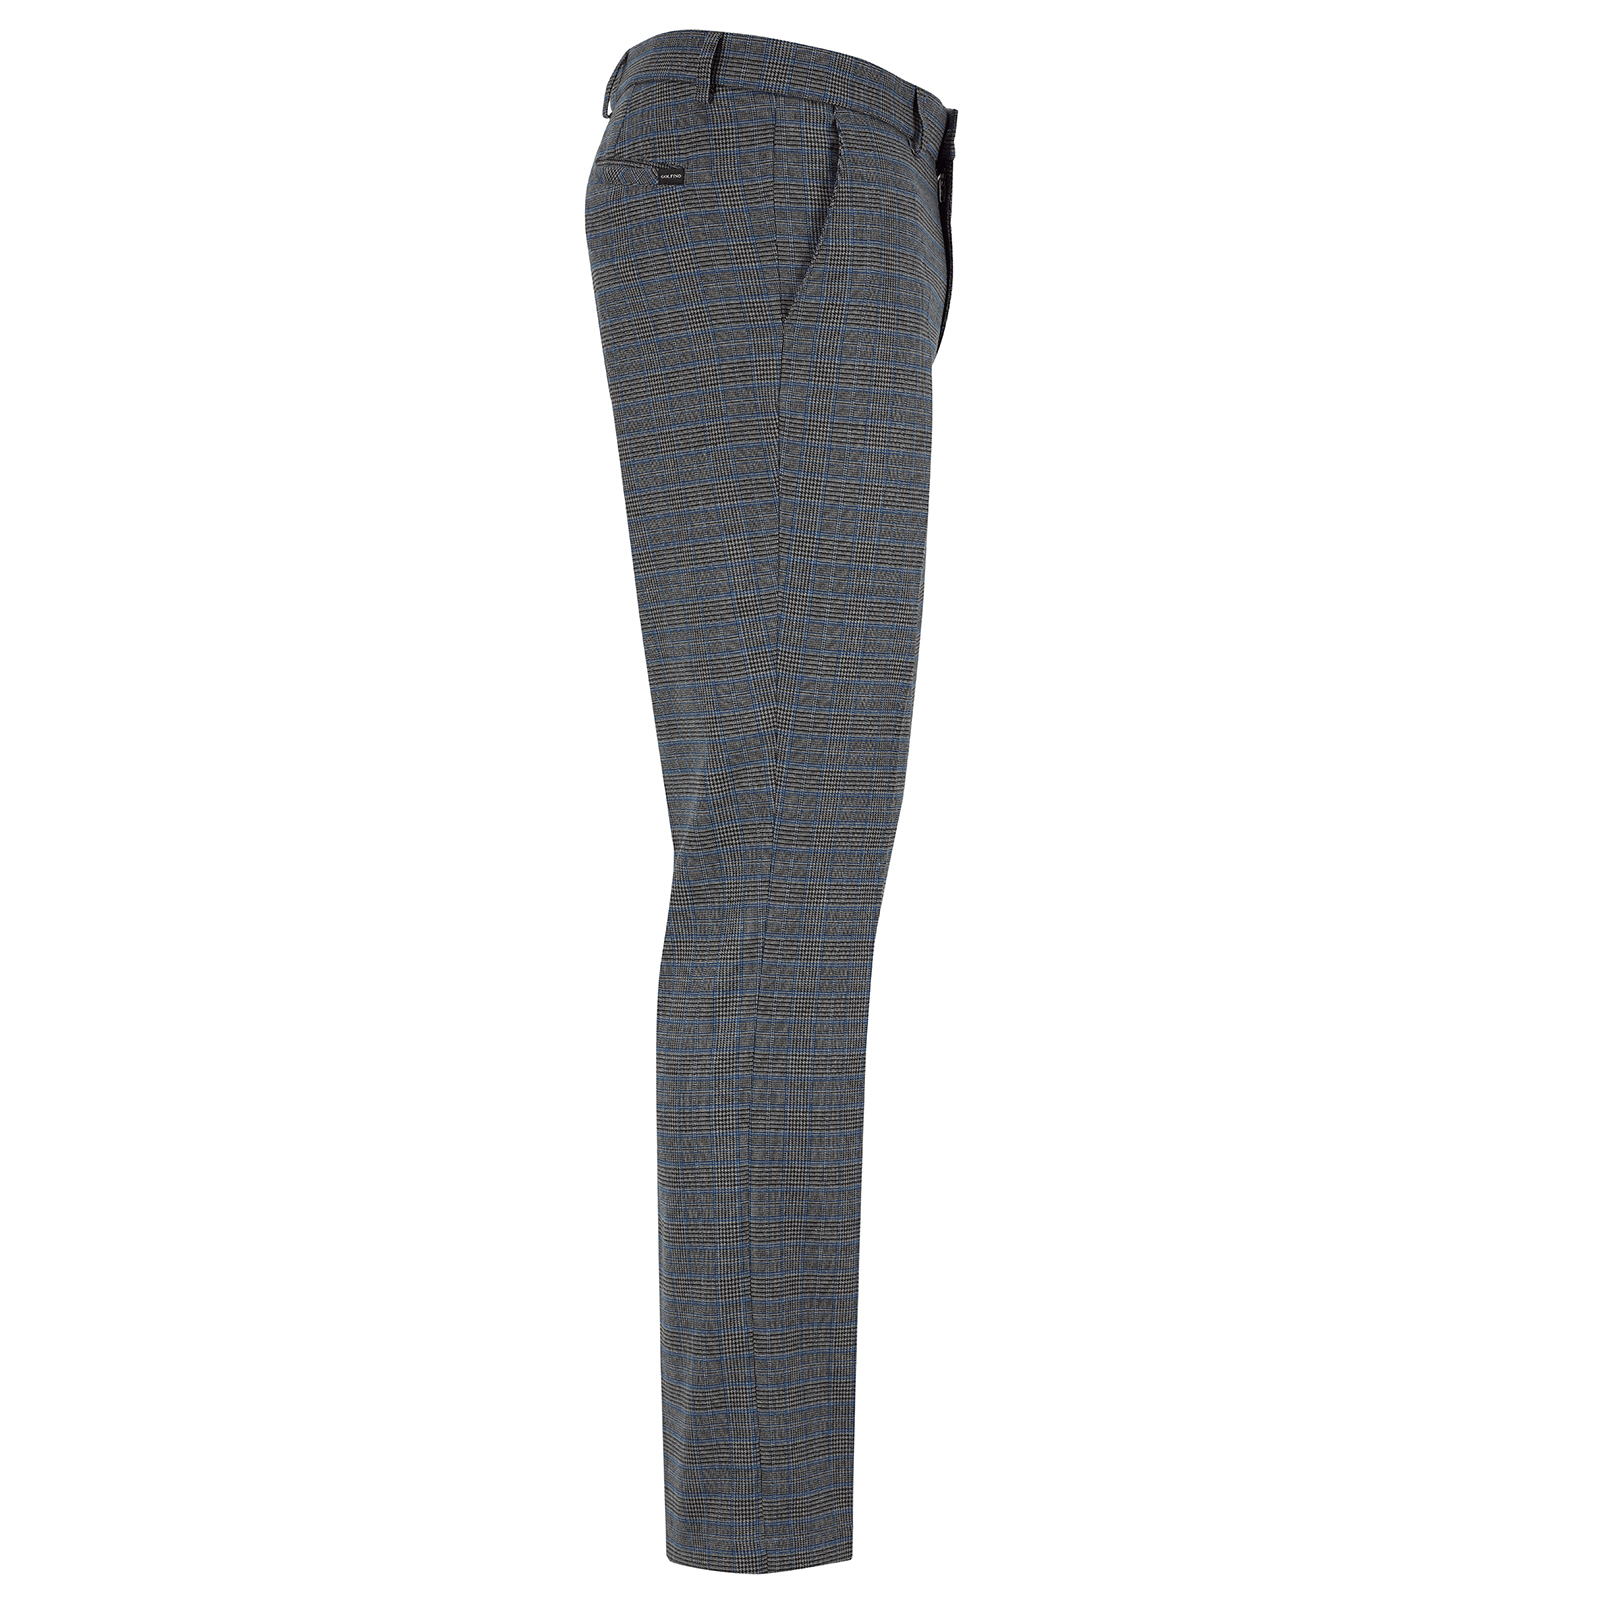 Designer Herren Golf Karohose in Slim Fit